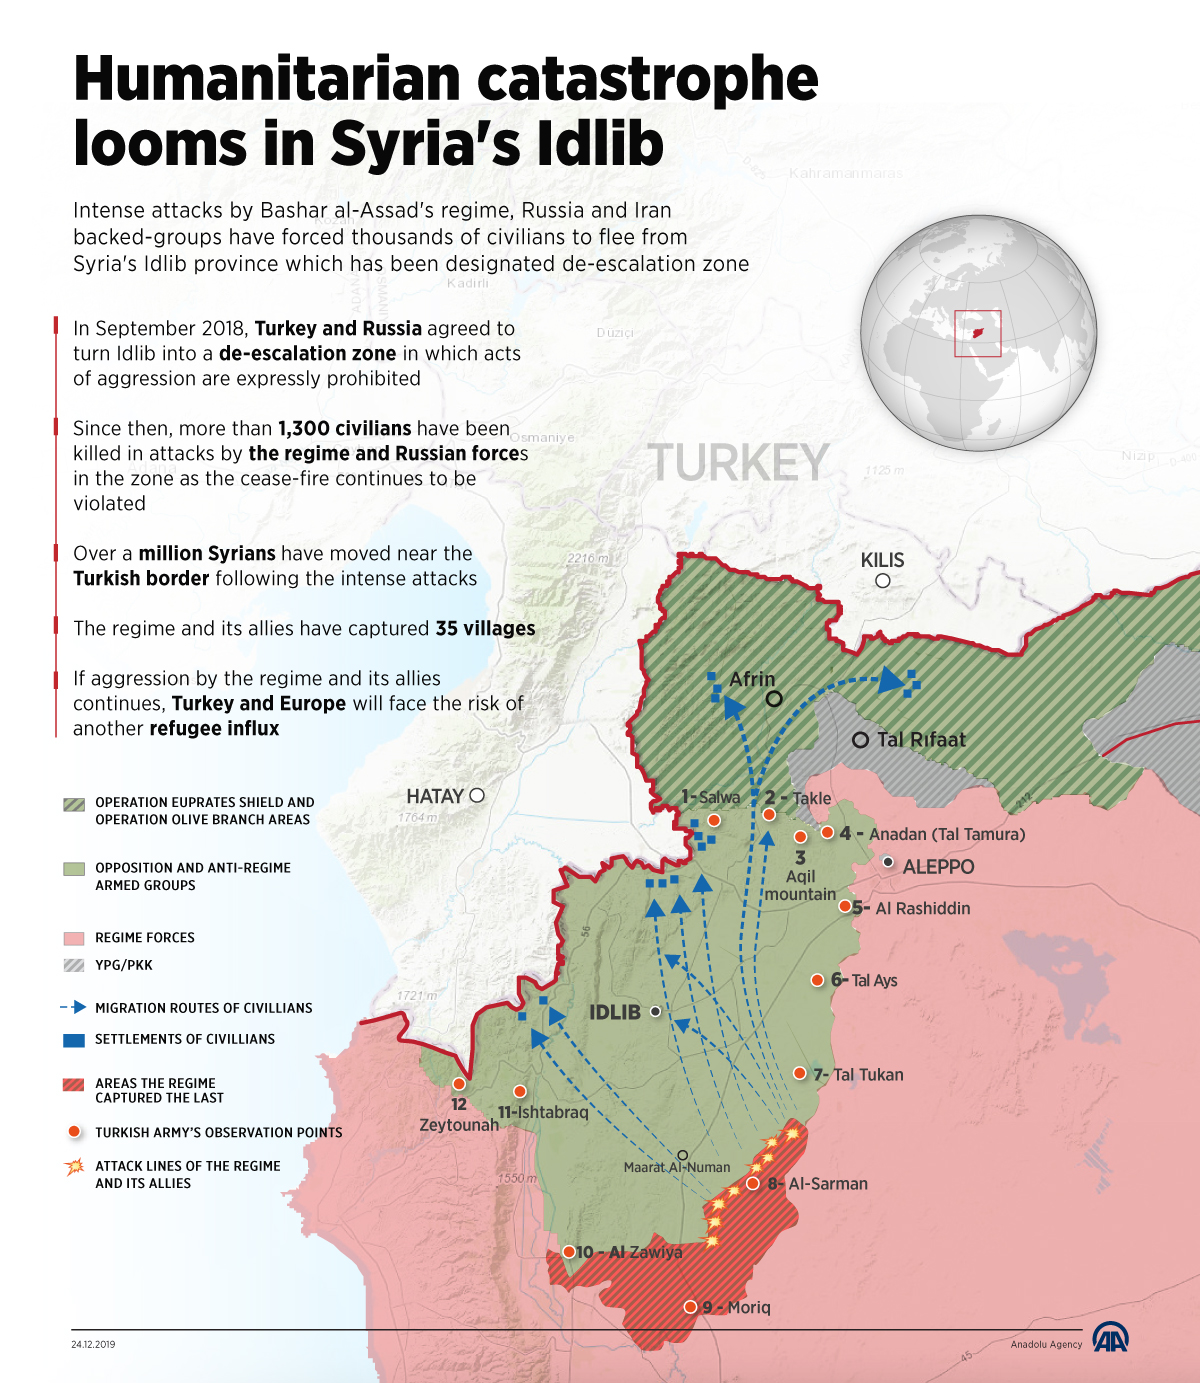 Illegal Migrants And Idlib Crisis: Turkey's New-Old Game To Pressure European Union